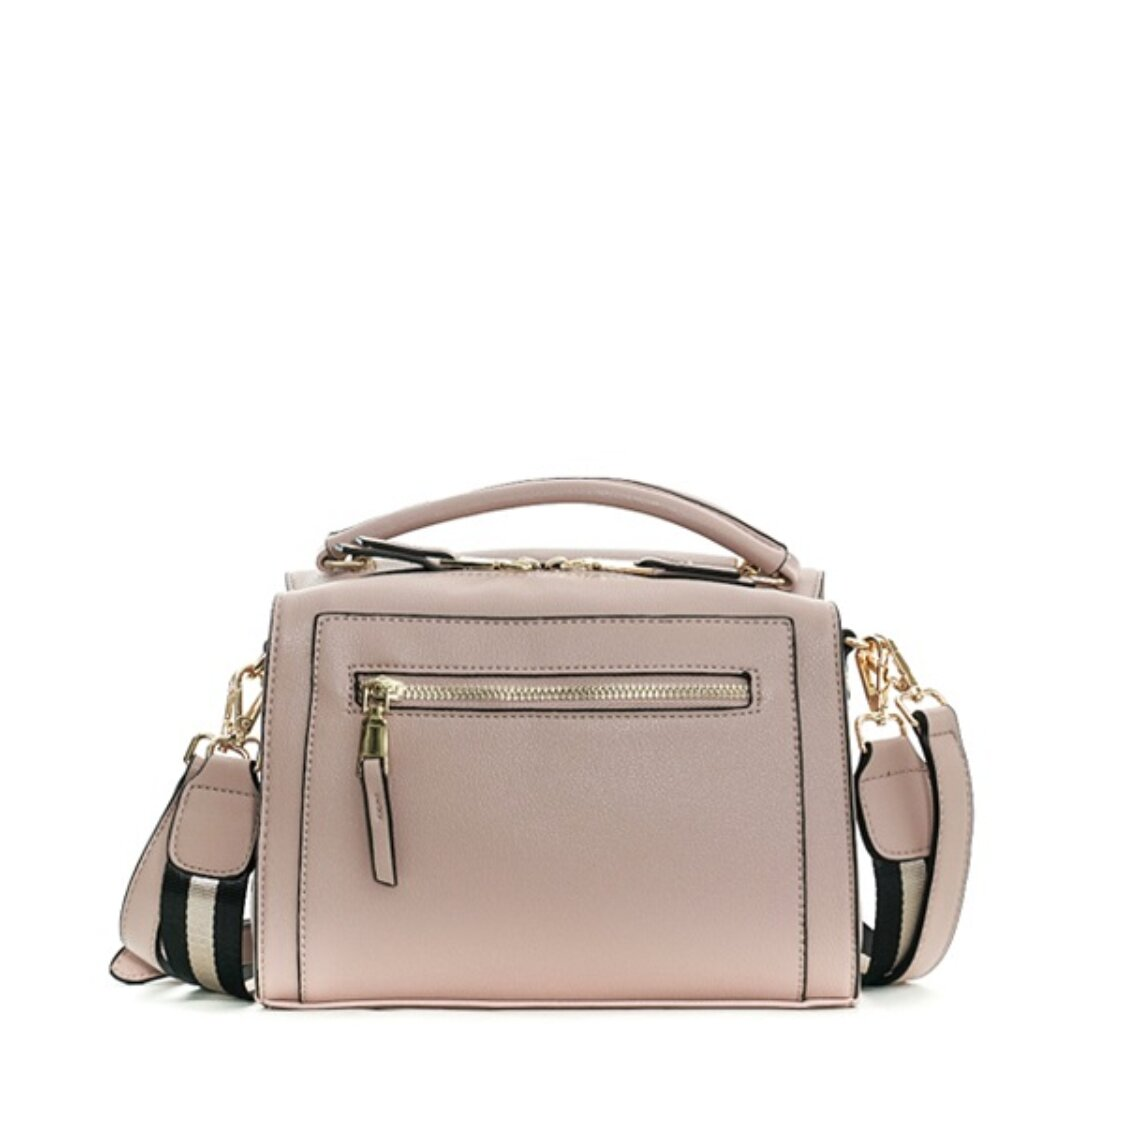 Renoma Small Shoulder Bag Pink